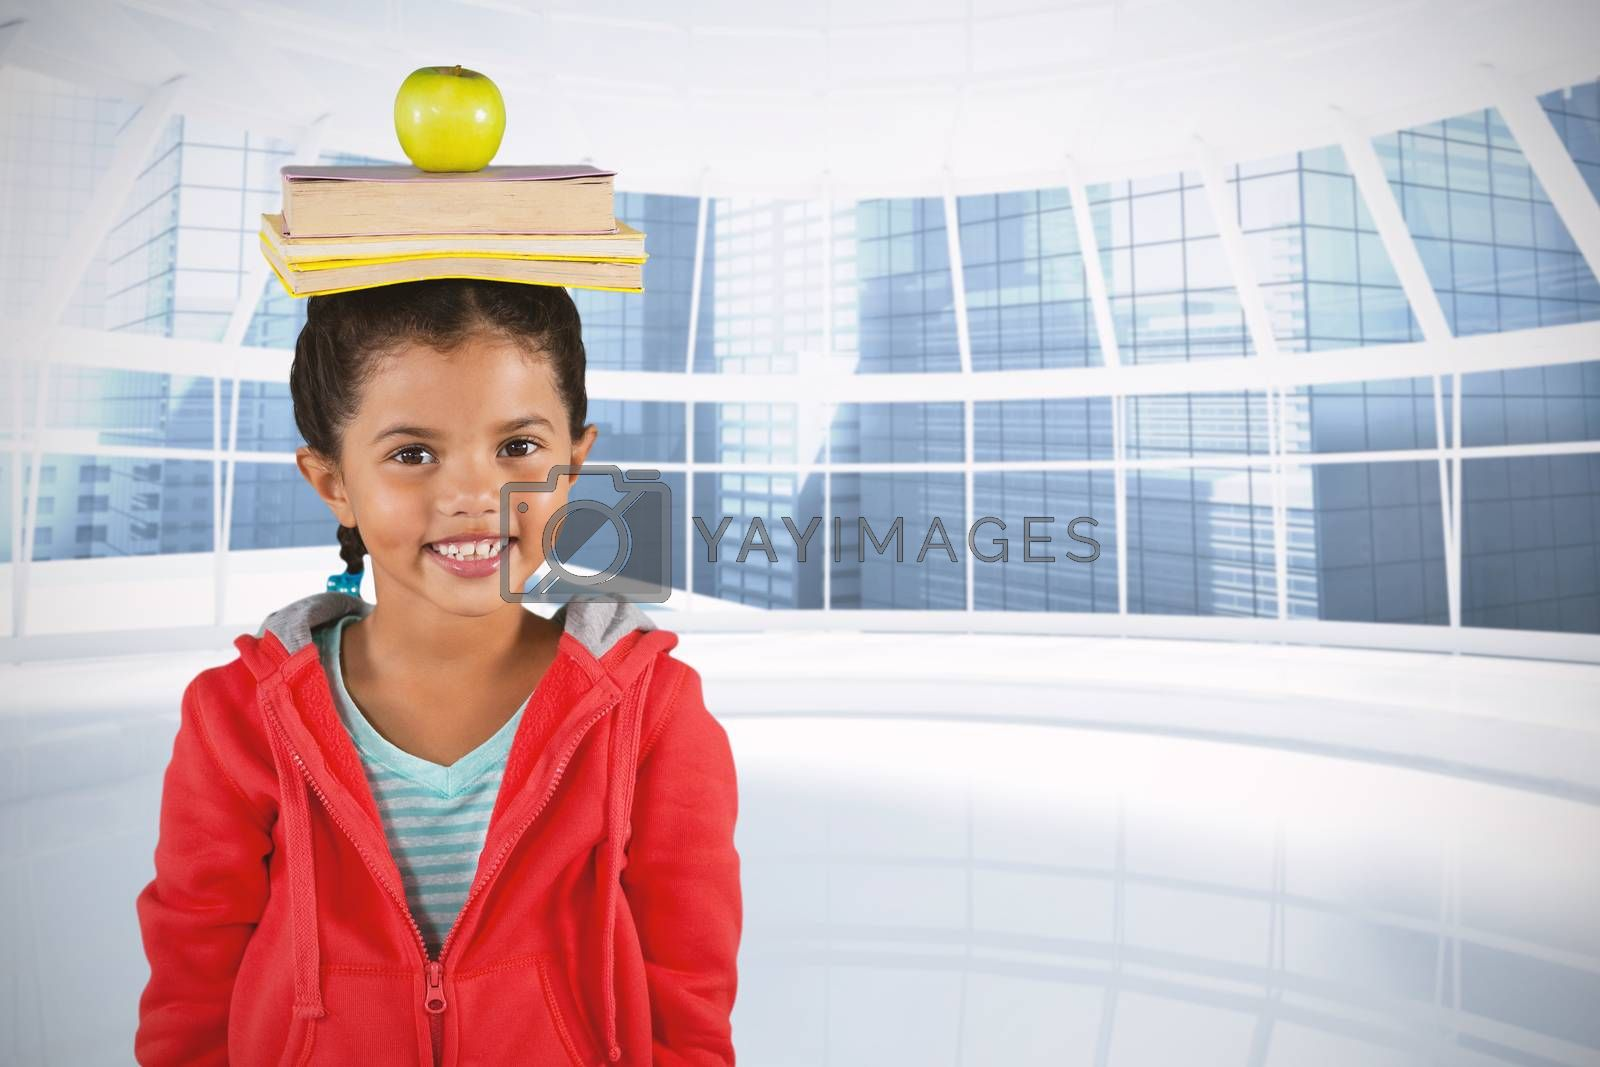 Composite image of smiling girl balancing books and apple on head by Wavebreakmedia